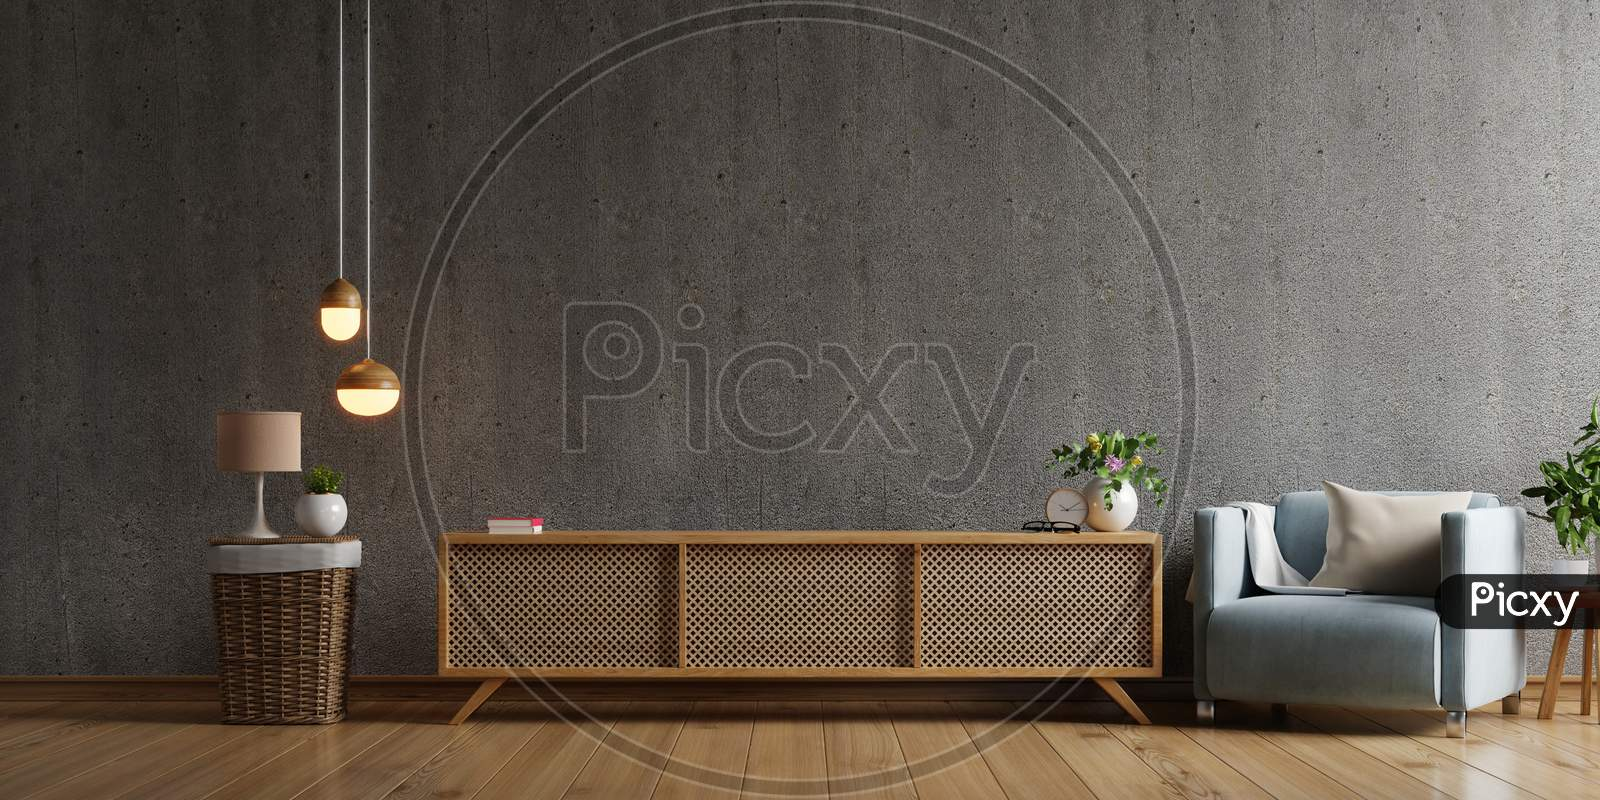 Cabinet Tv In Modern Living Room With Armchair,Lamp,Table,Flower And Plant On Concrete Wall Background.